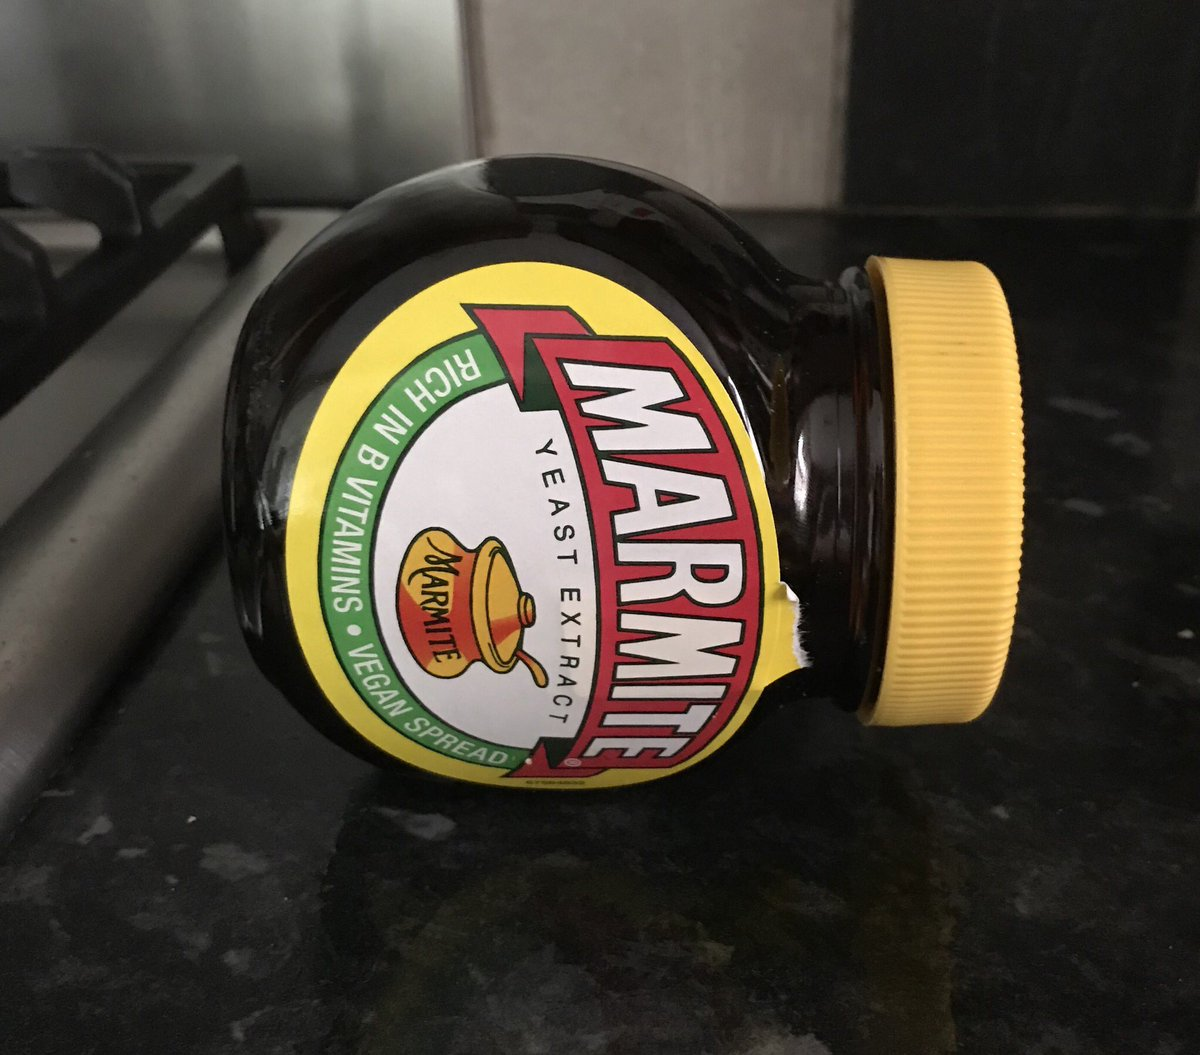 It took me years to realise that near-empty Marmite jars should be kept on their side so you can the last of it out more easily. That's why the jar is flat is the sides